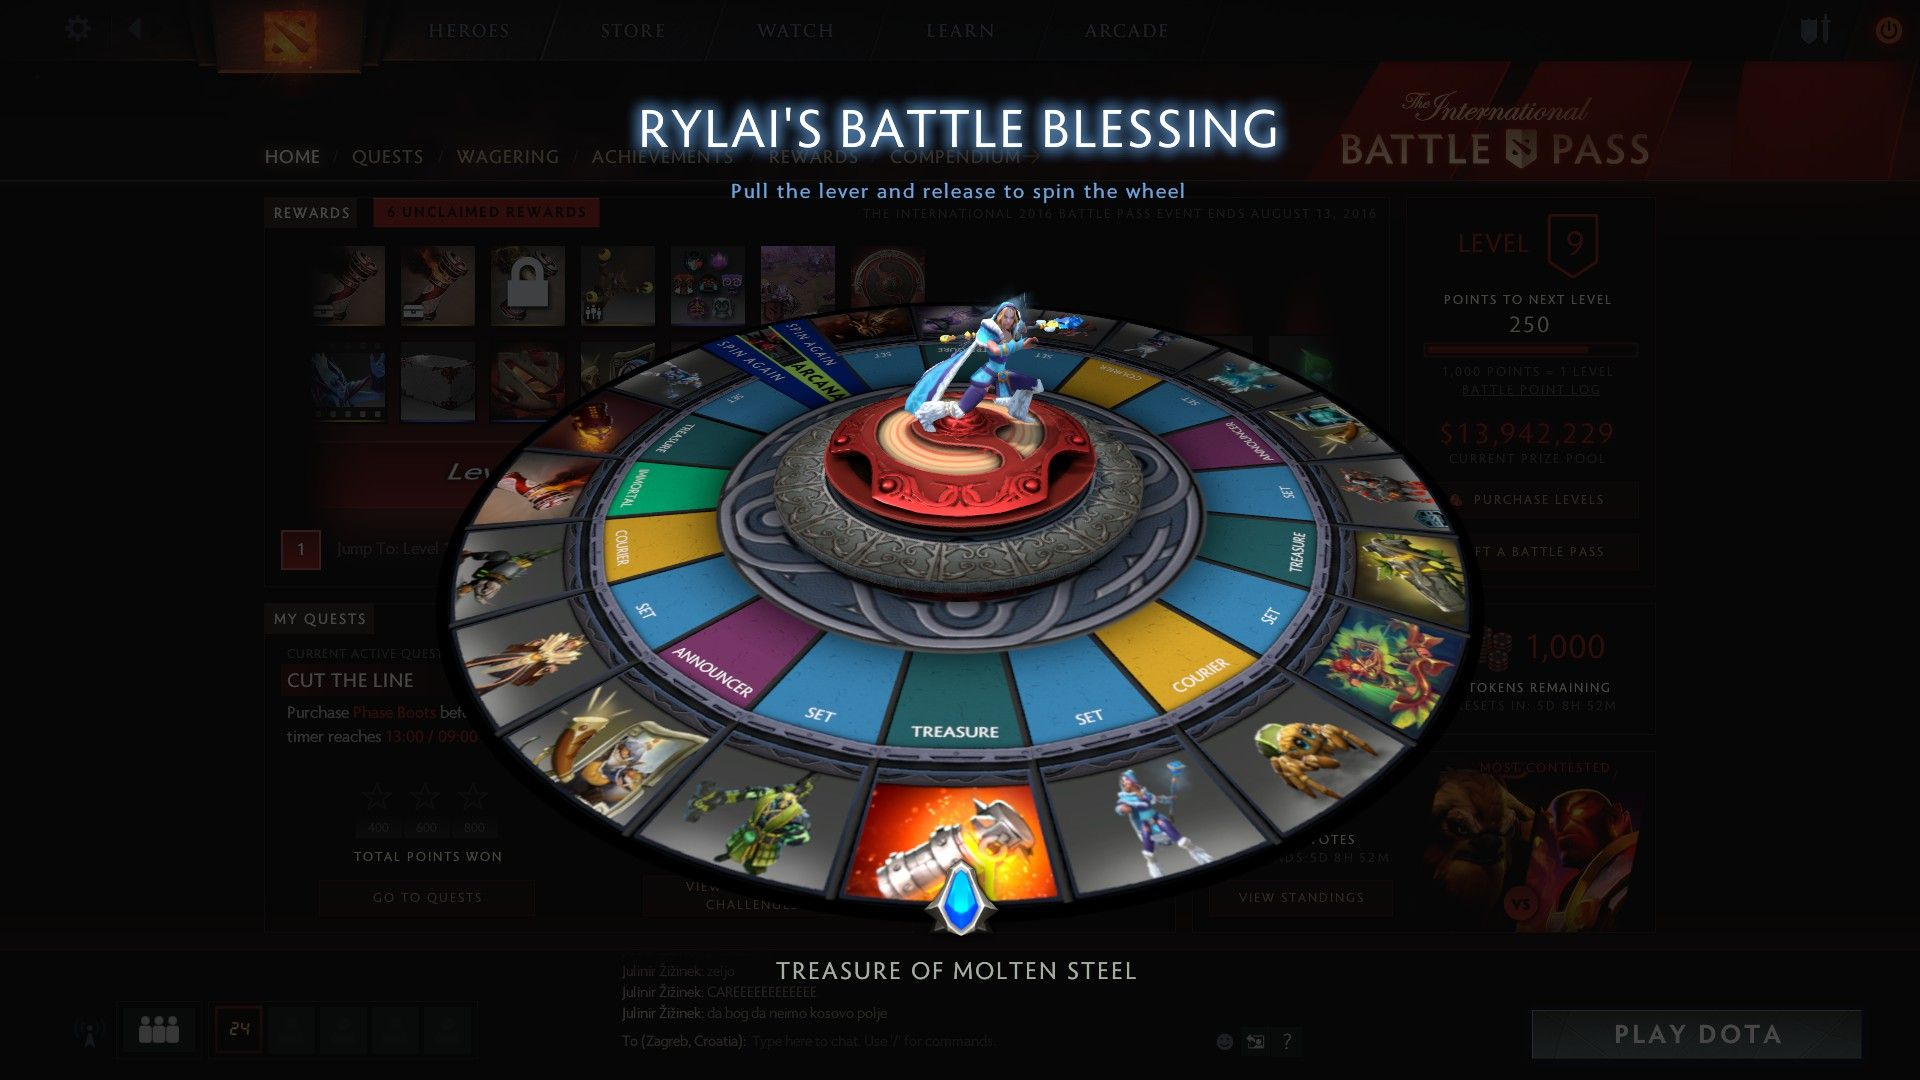 Dota 2 Battle Pass nagrada